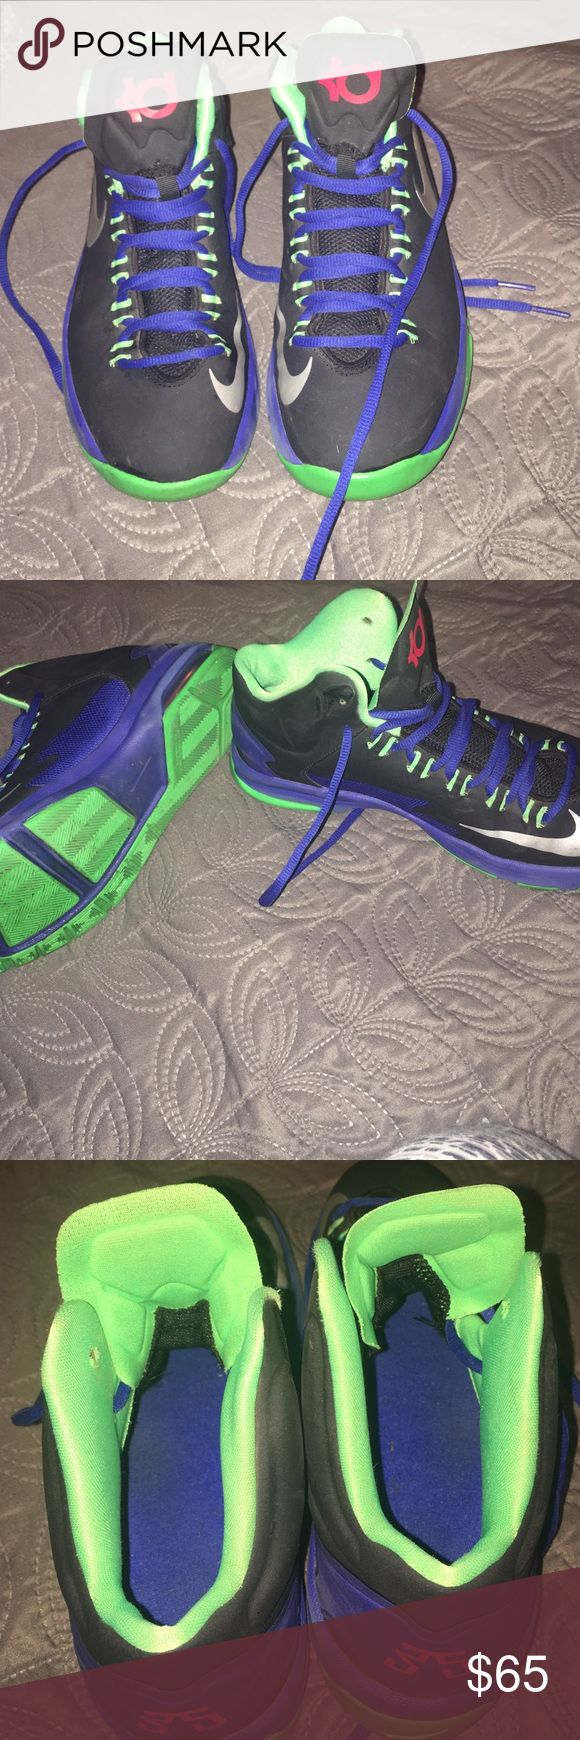 Nike KD sneakers size: 6 in boys, Good condition, barley worn. Nike Shoes Sneakers